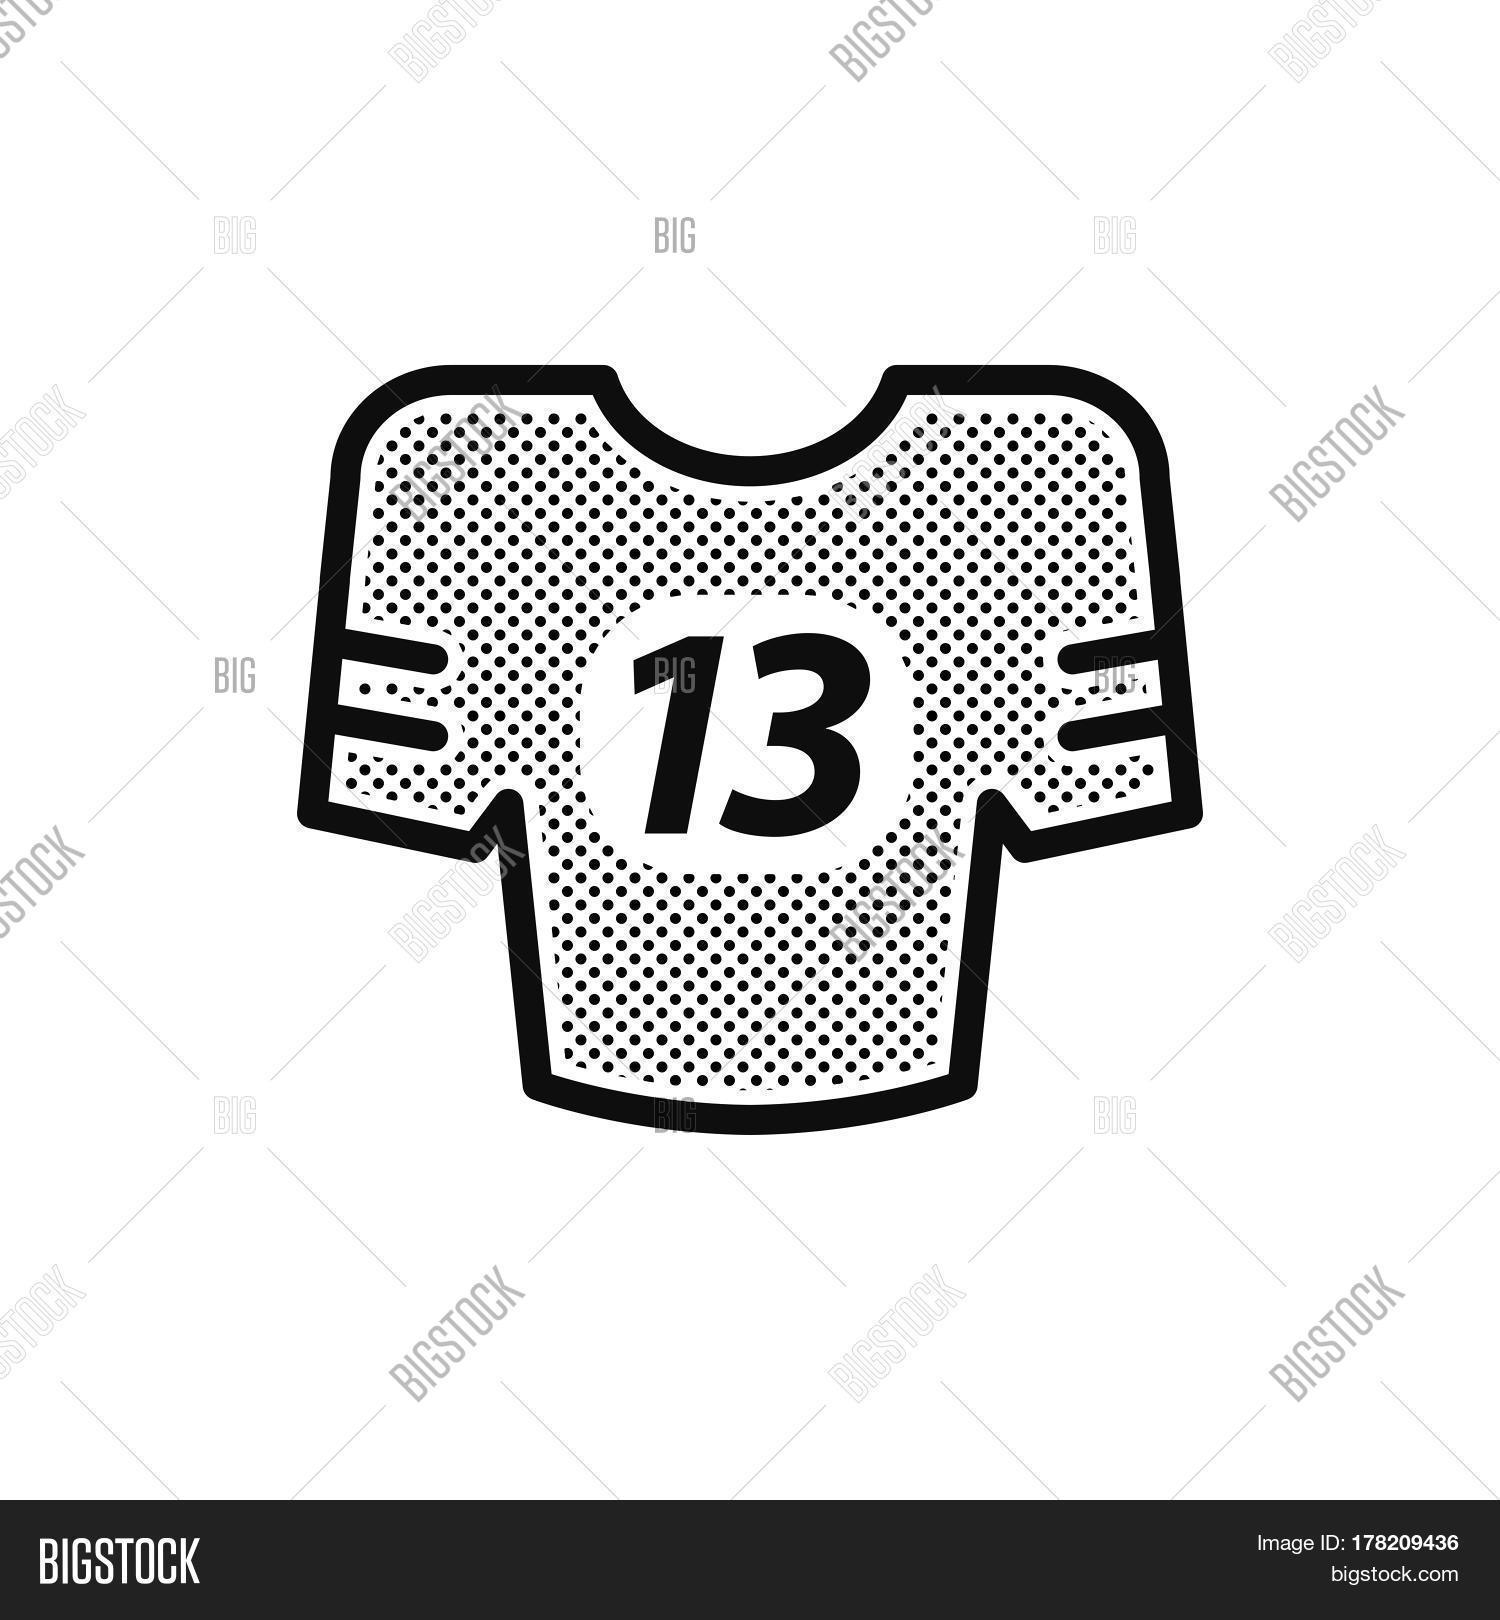 Shirts american football icon vector photo bigstock American football style t shirts